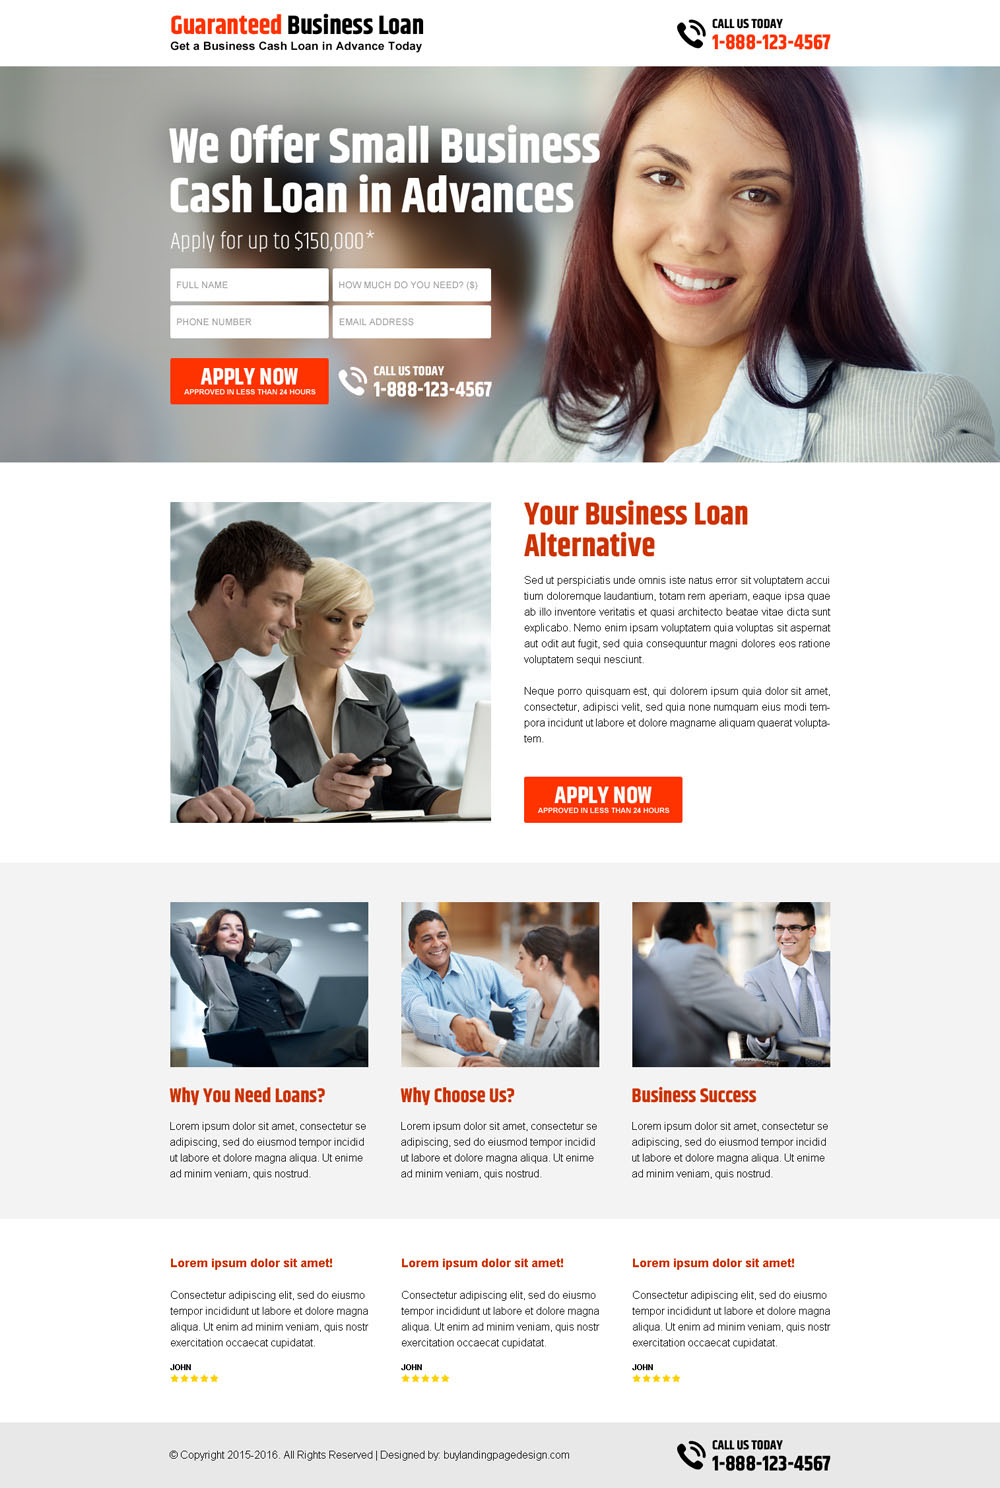 small-business-cash-loan-in-advance-lead-capture-landing-page-design-018